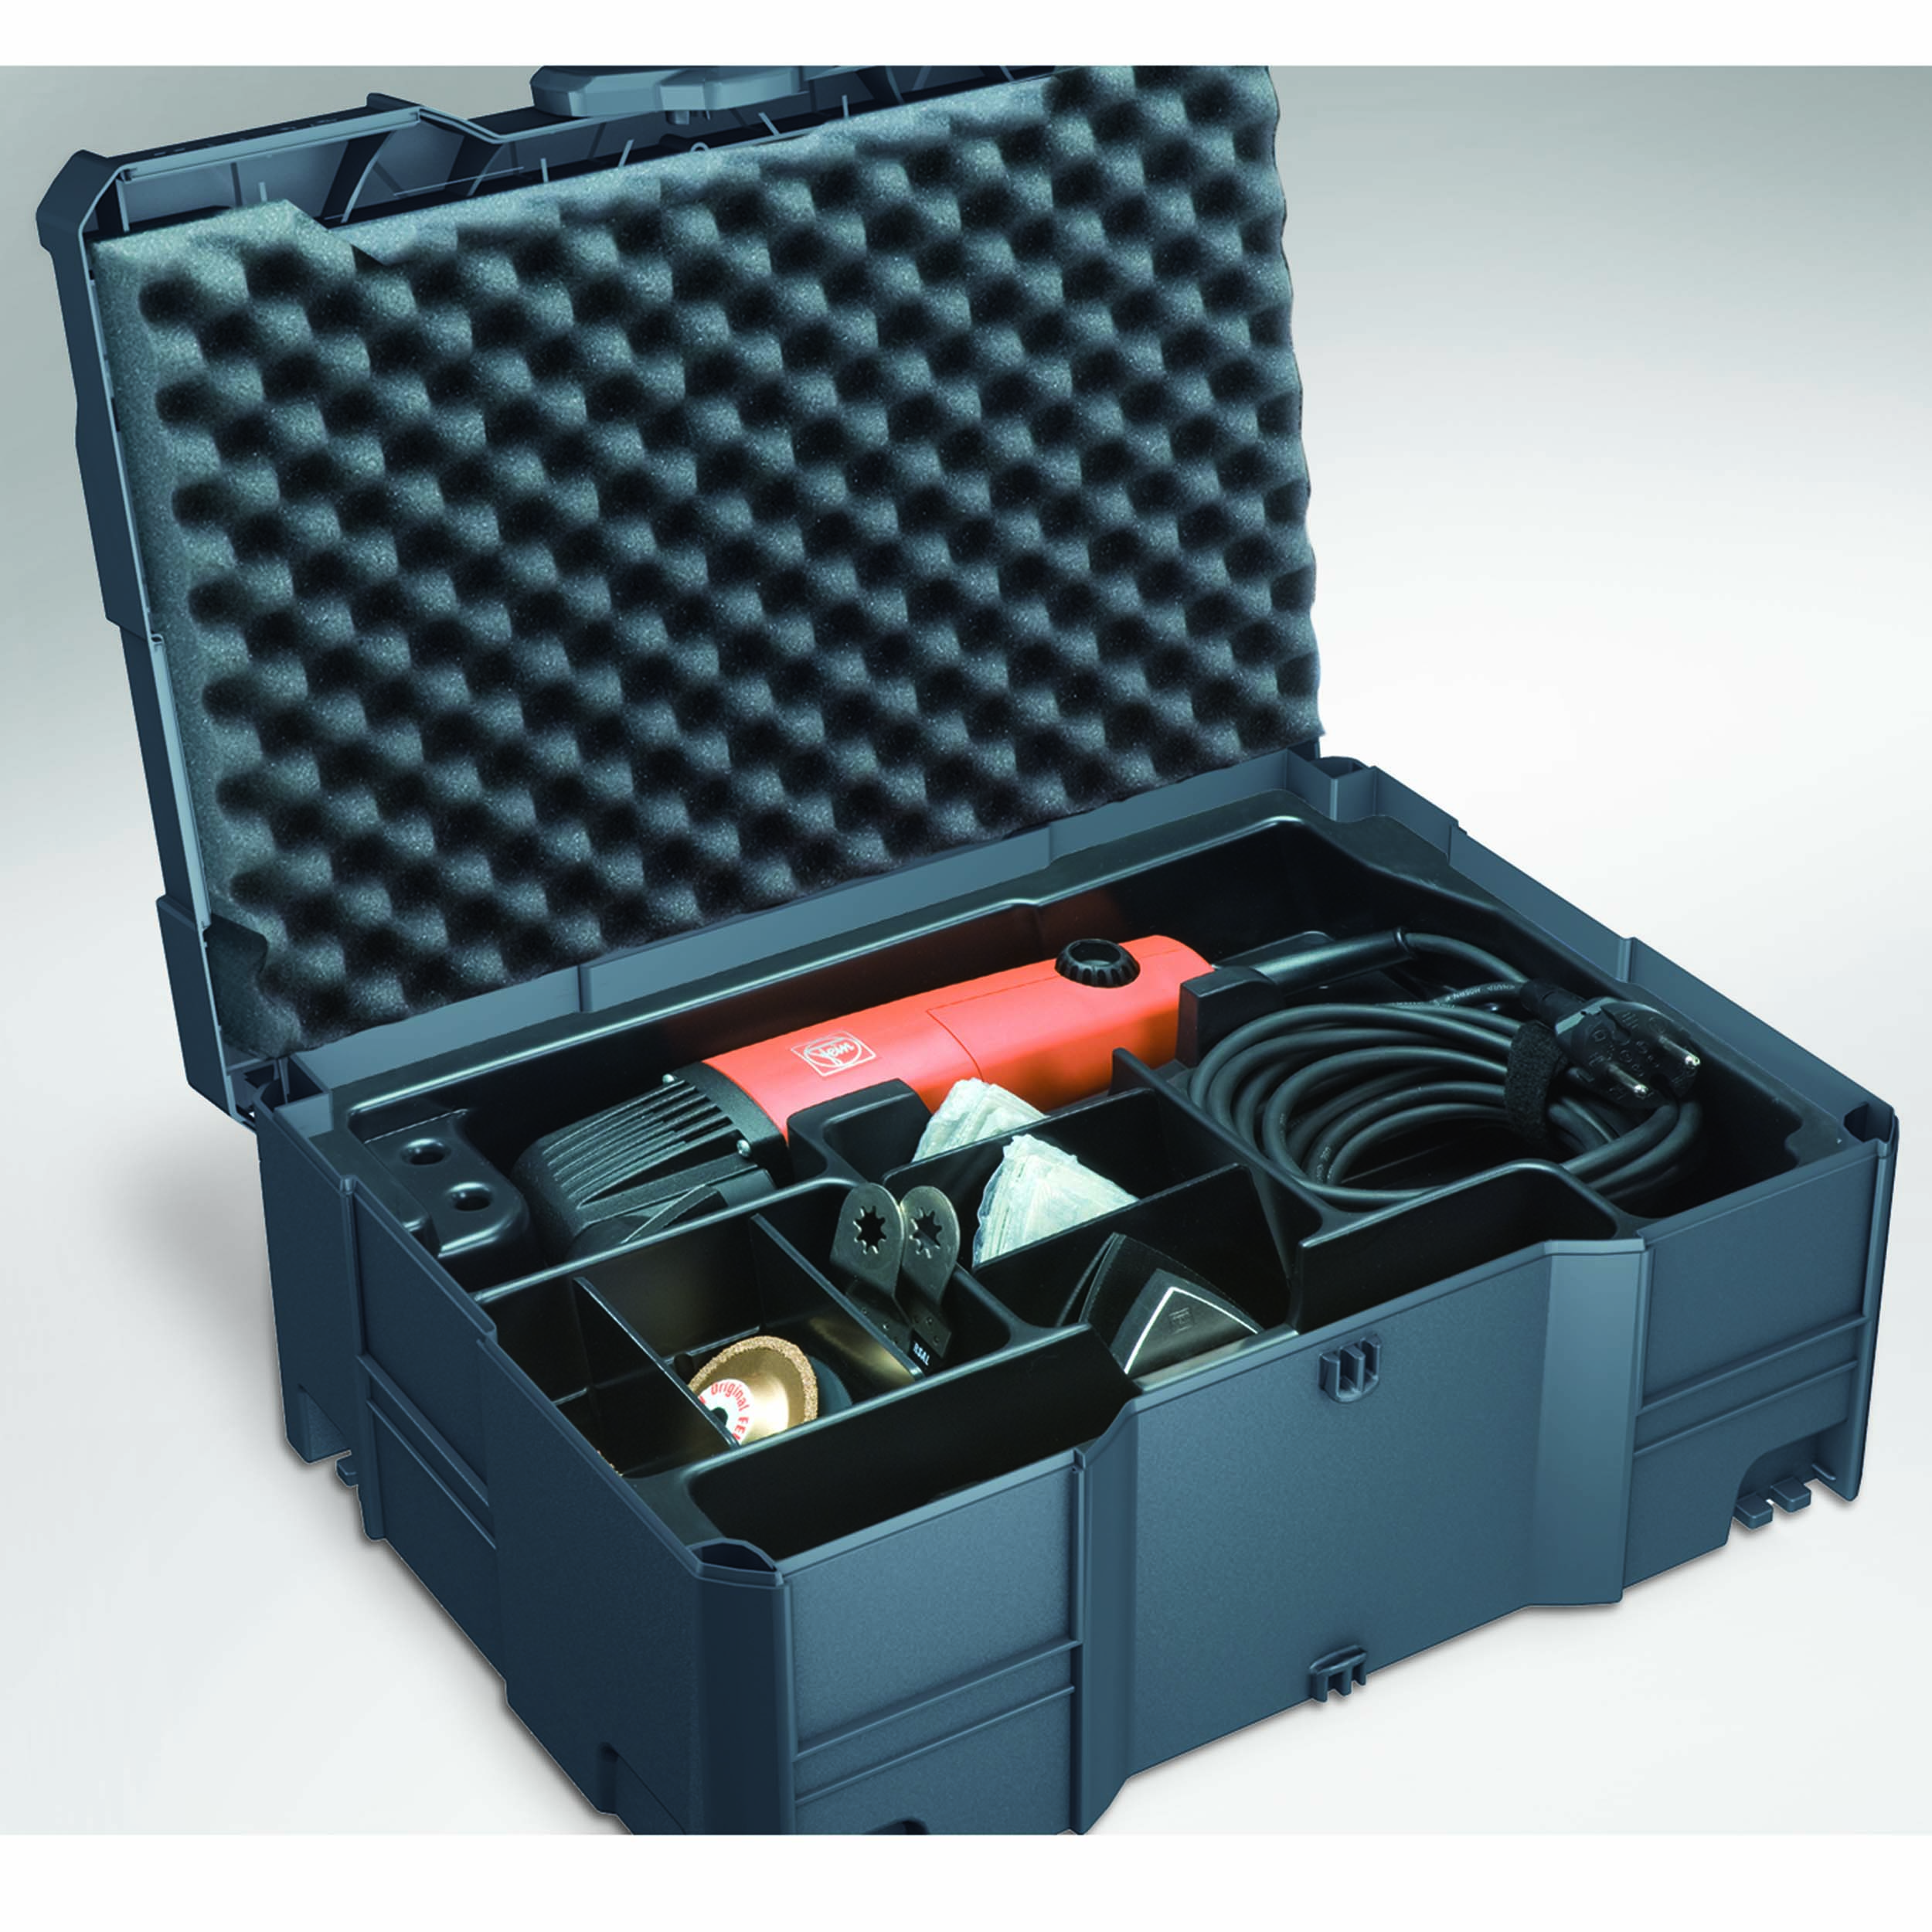 Systainer T-Loc II for FEIN Multimaster with Insert, Lid and Base Foam, 15 mm Anthracite